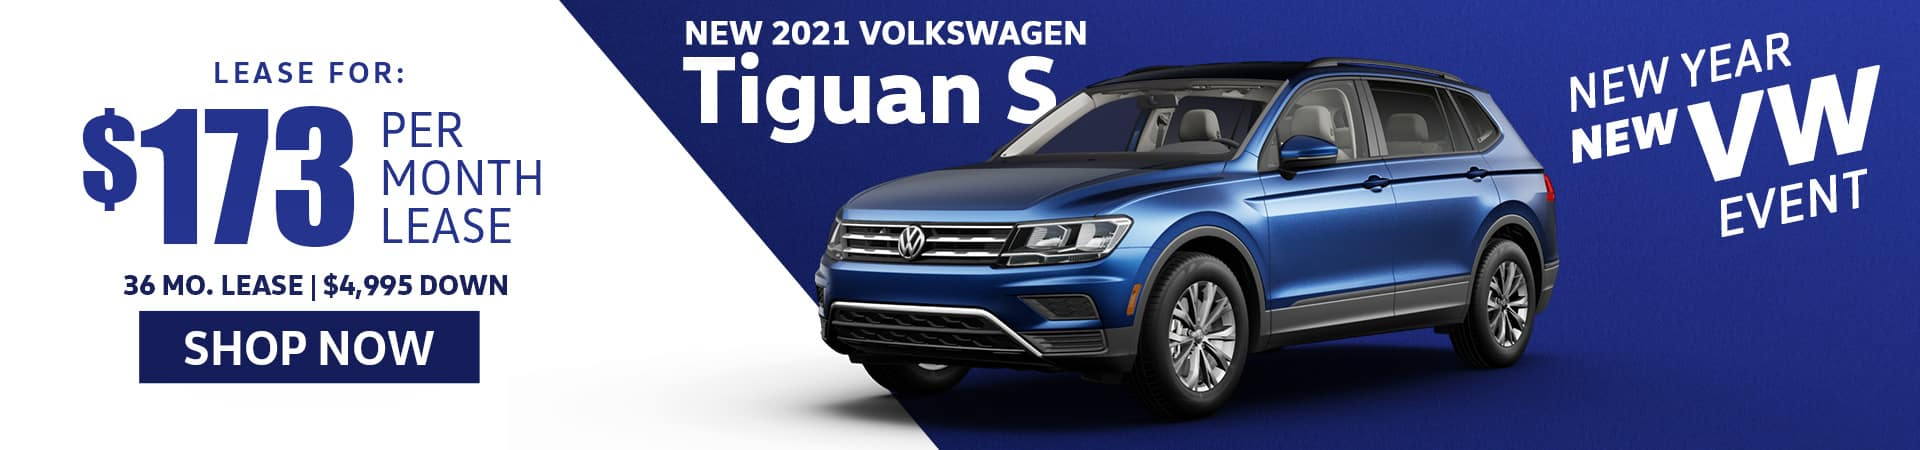 New 2021 Tiguan S Lease Special